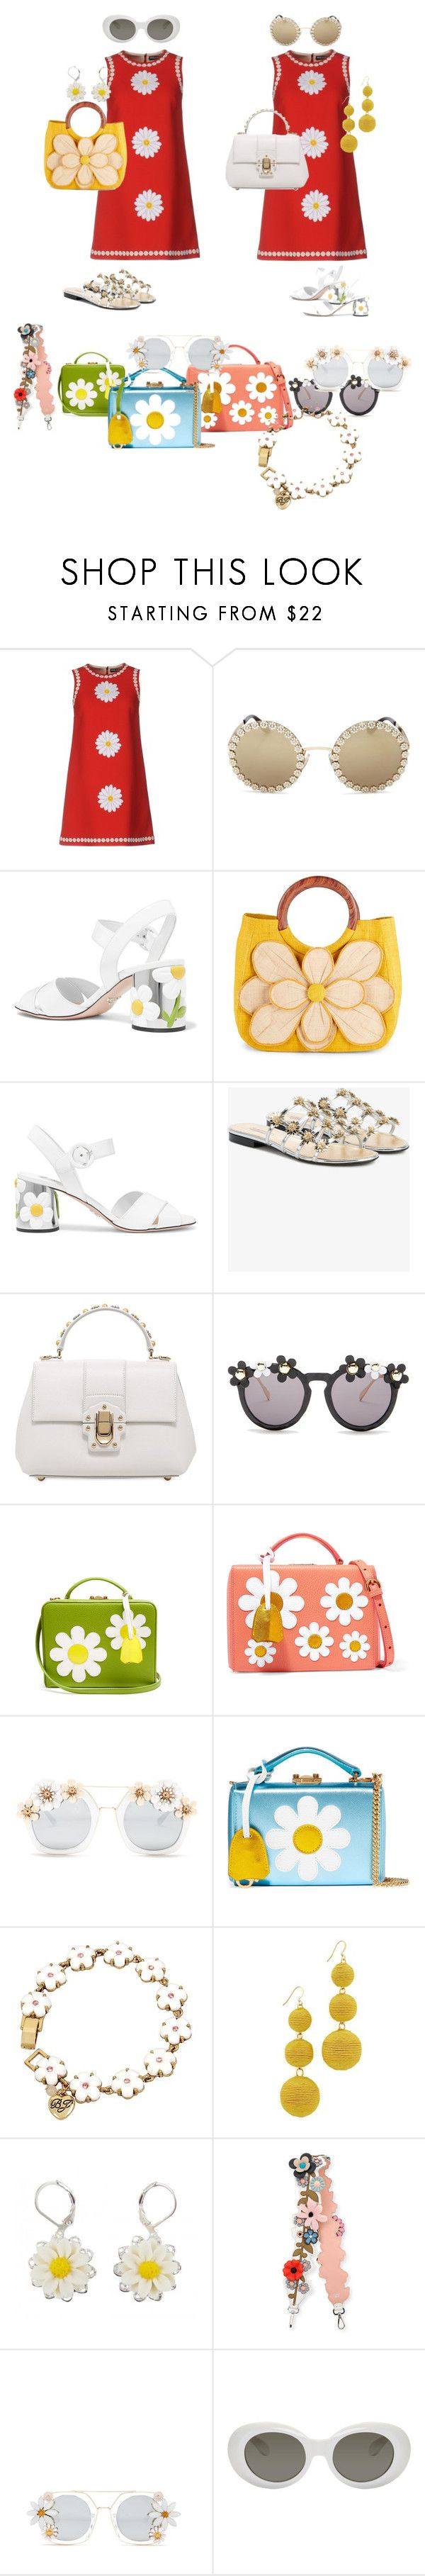 """""""Everything's coming up Daisies"""" by shellygregory ❤ liked on Polyvore featuring Dolce&Gabbana, Prada, Mar y Sol, Fabrizio Viti, Cara Accessories, Mark Cross, Betsey Johnson, Kenneth Jay Lane, Fendi and Acne Studios"""